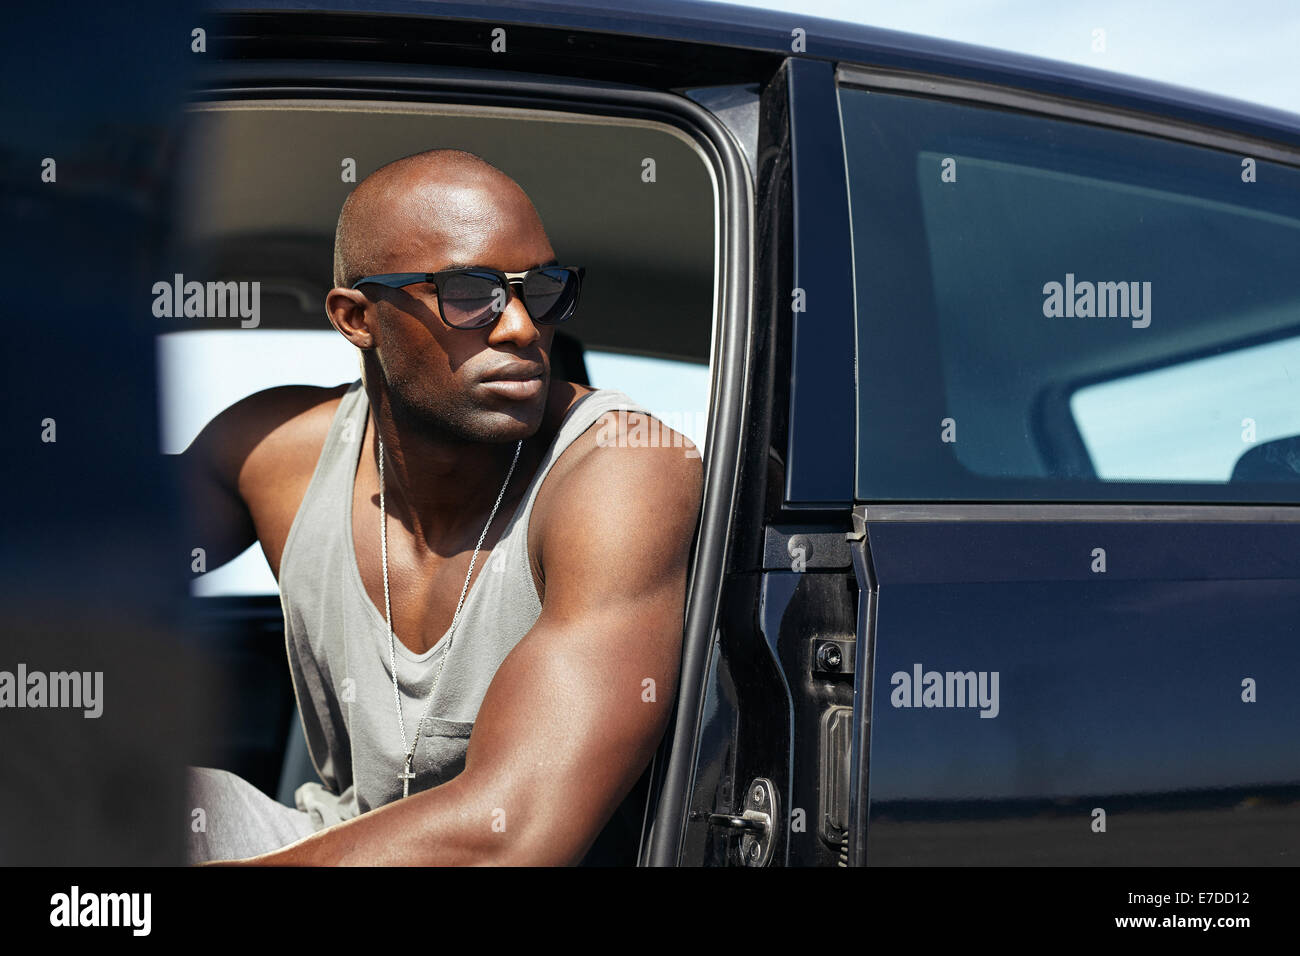 Image of young African man sitting in car looking away. Stylish Afro-American model sitting in car. - Stock Image